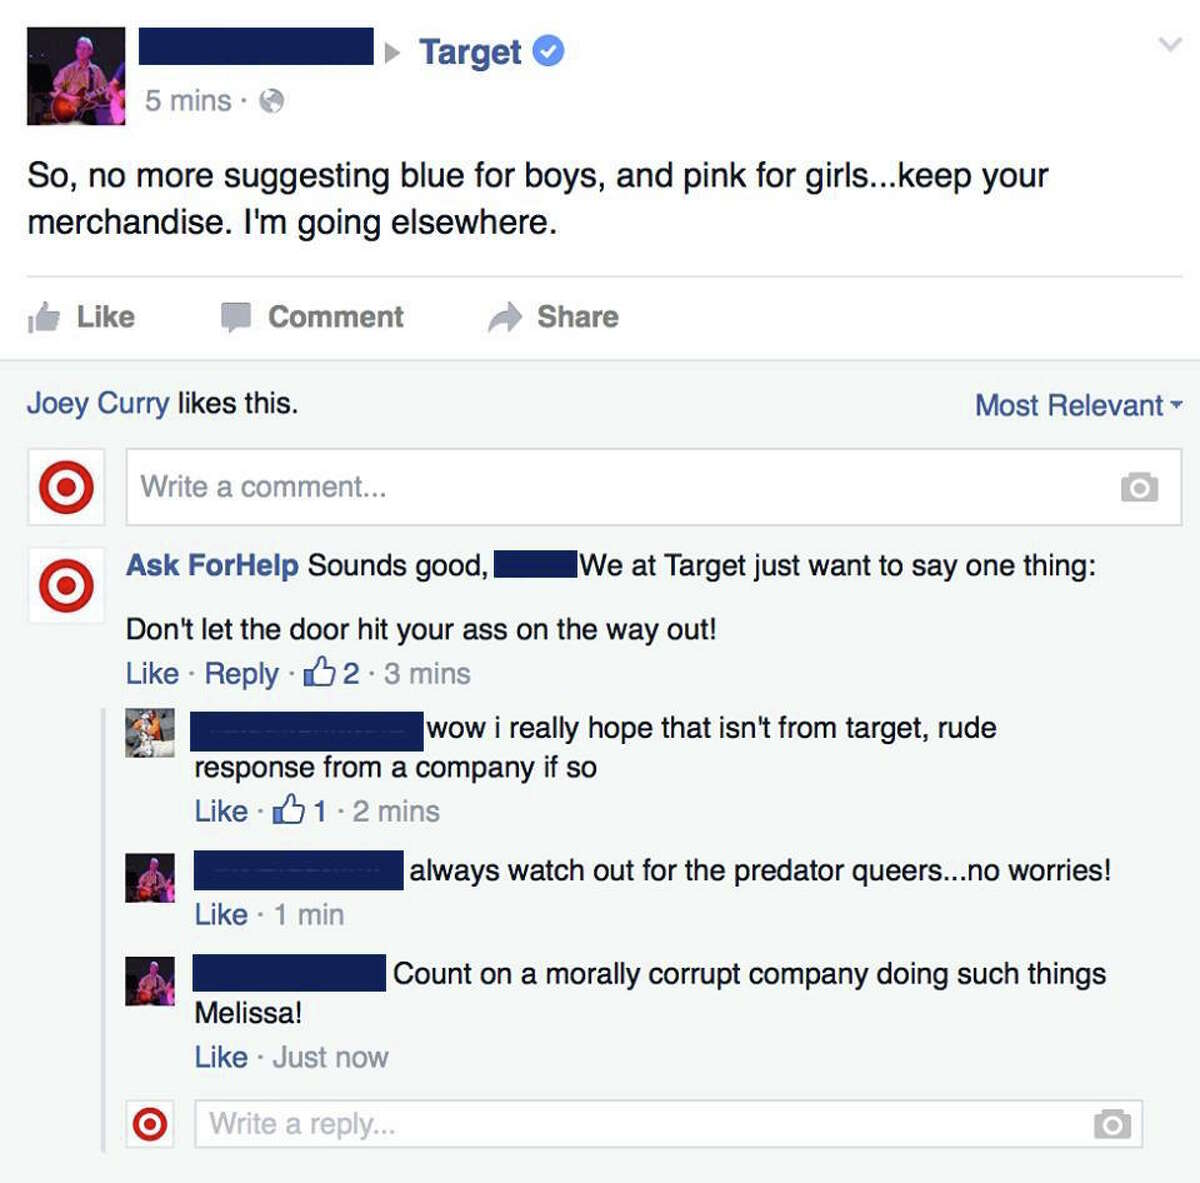 A man named Mike Melgaard posed as a fake customer service rep for Target and provided sarcastic responses to people's complaints about the company's decision to remove gender-based signs in stores.